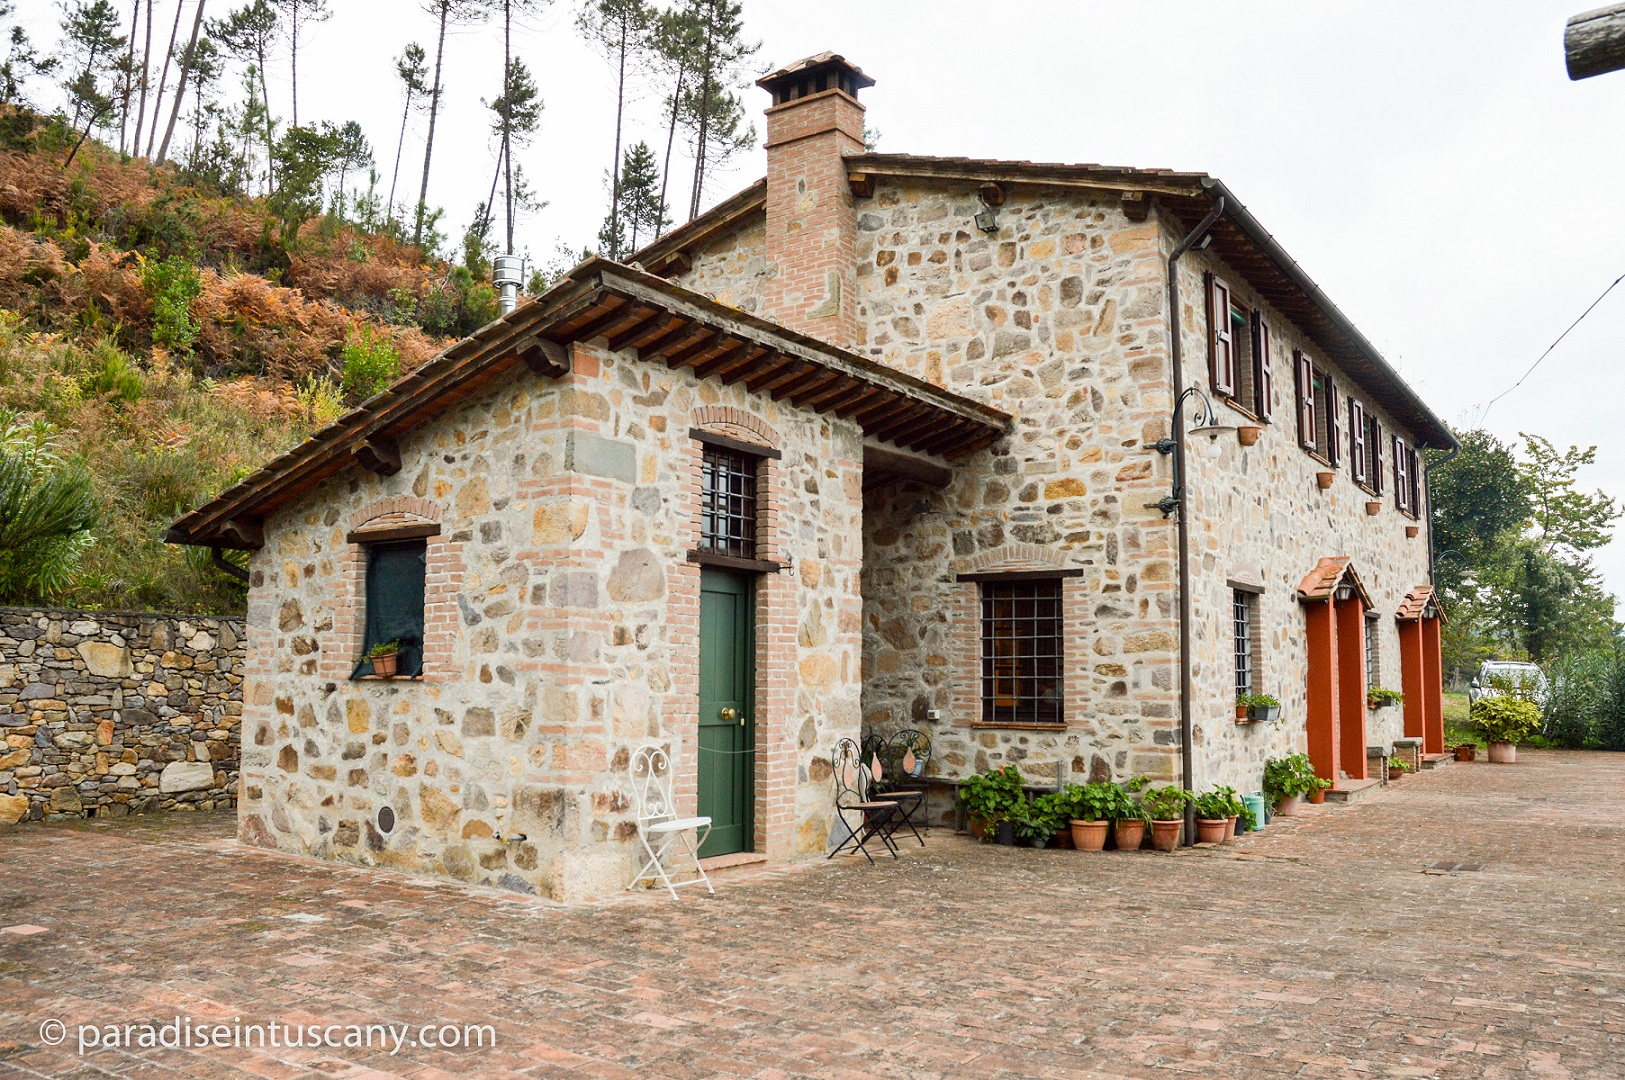 Villa Ruota - Relax in this Tuscan farmhouse with beathtaking vistas